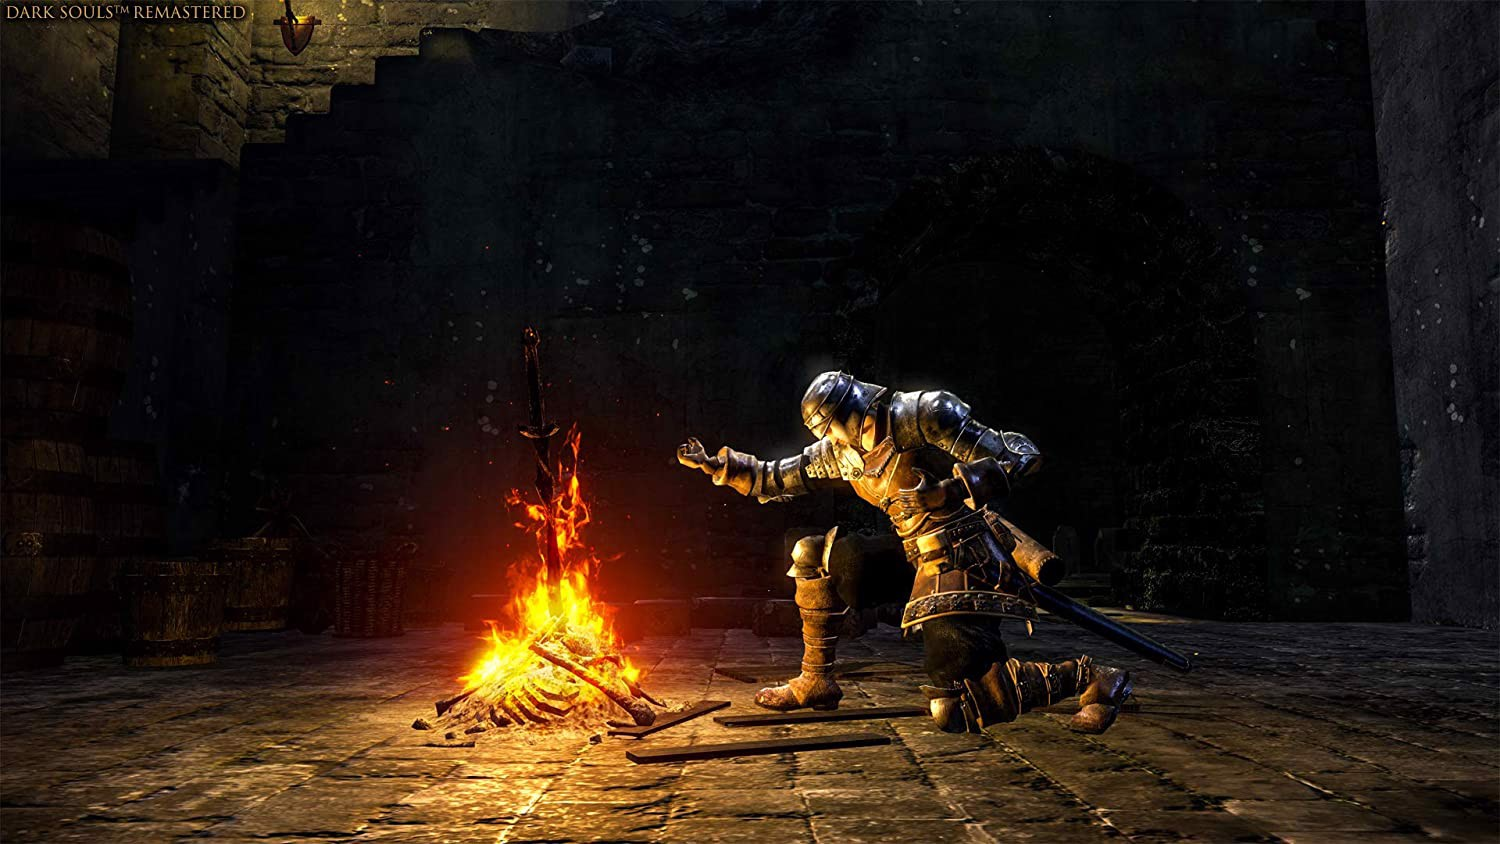 857 - Dark Souls Trilogy